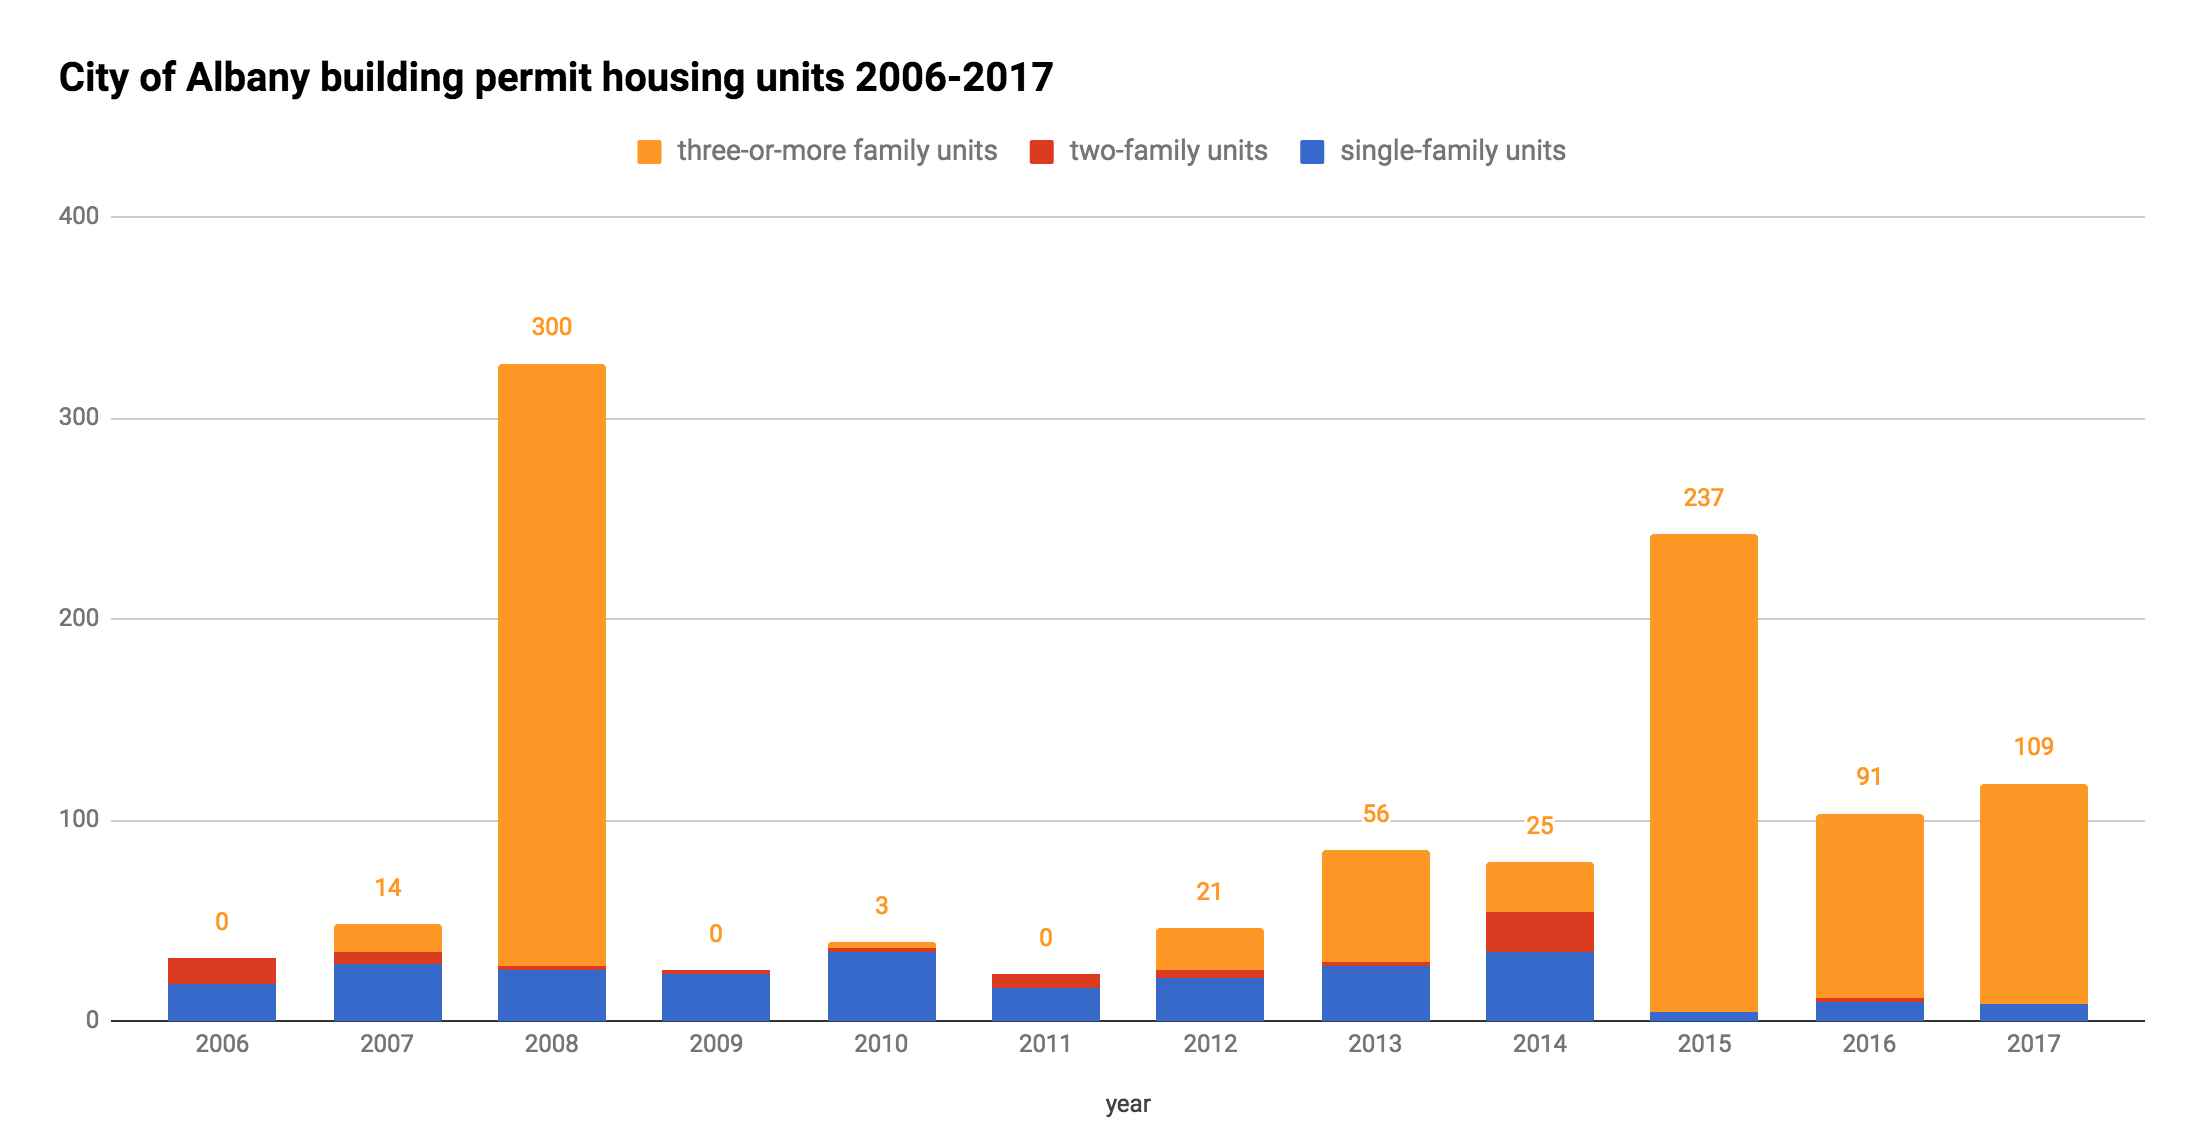 Albany_building_permit_residential_units_2006-2017.png